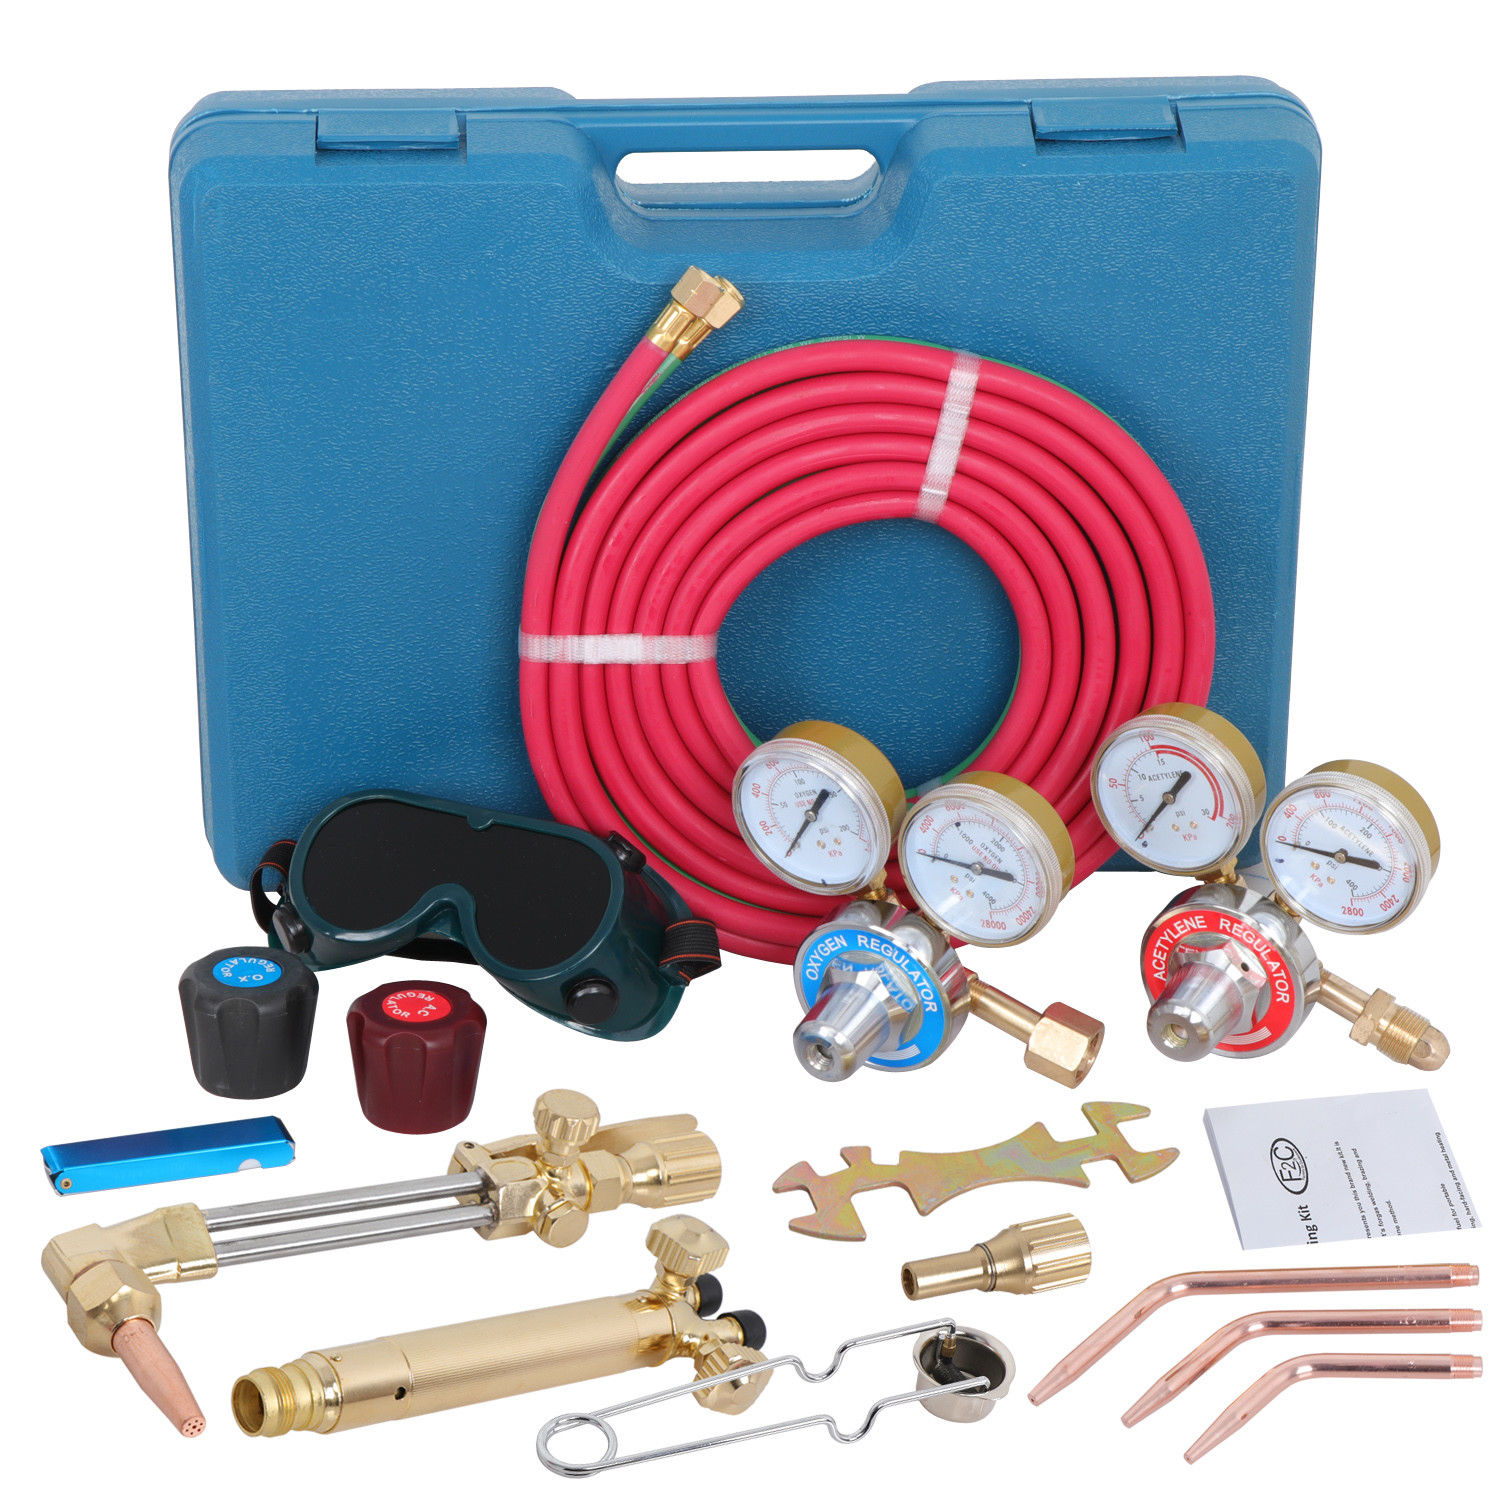 Zeny Gas Welding &Cutting Kit Harris Type Acetylene Oxygen Torch Set Welder Regulator